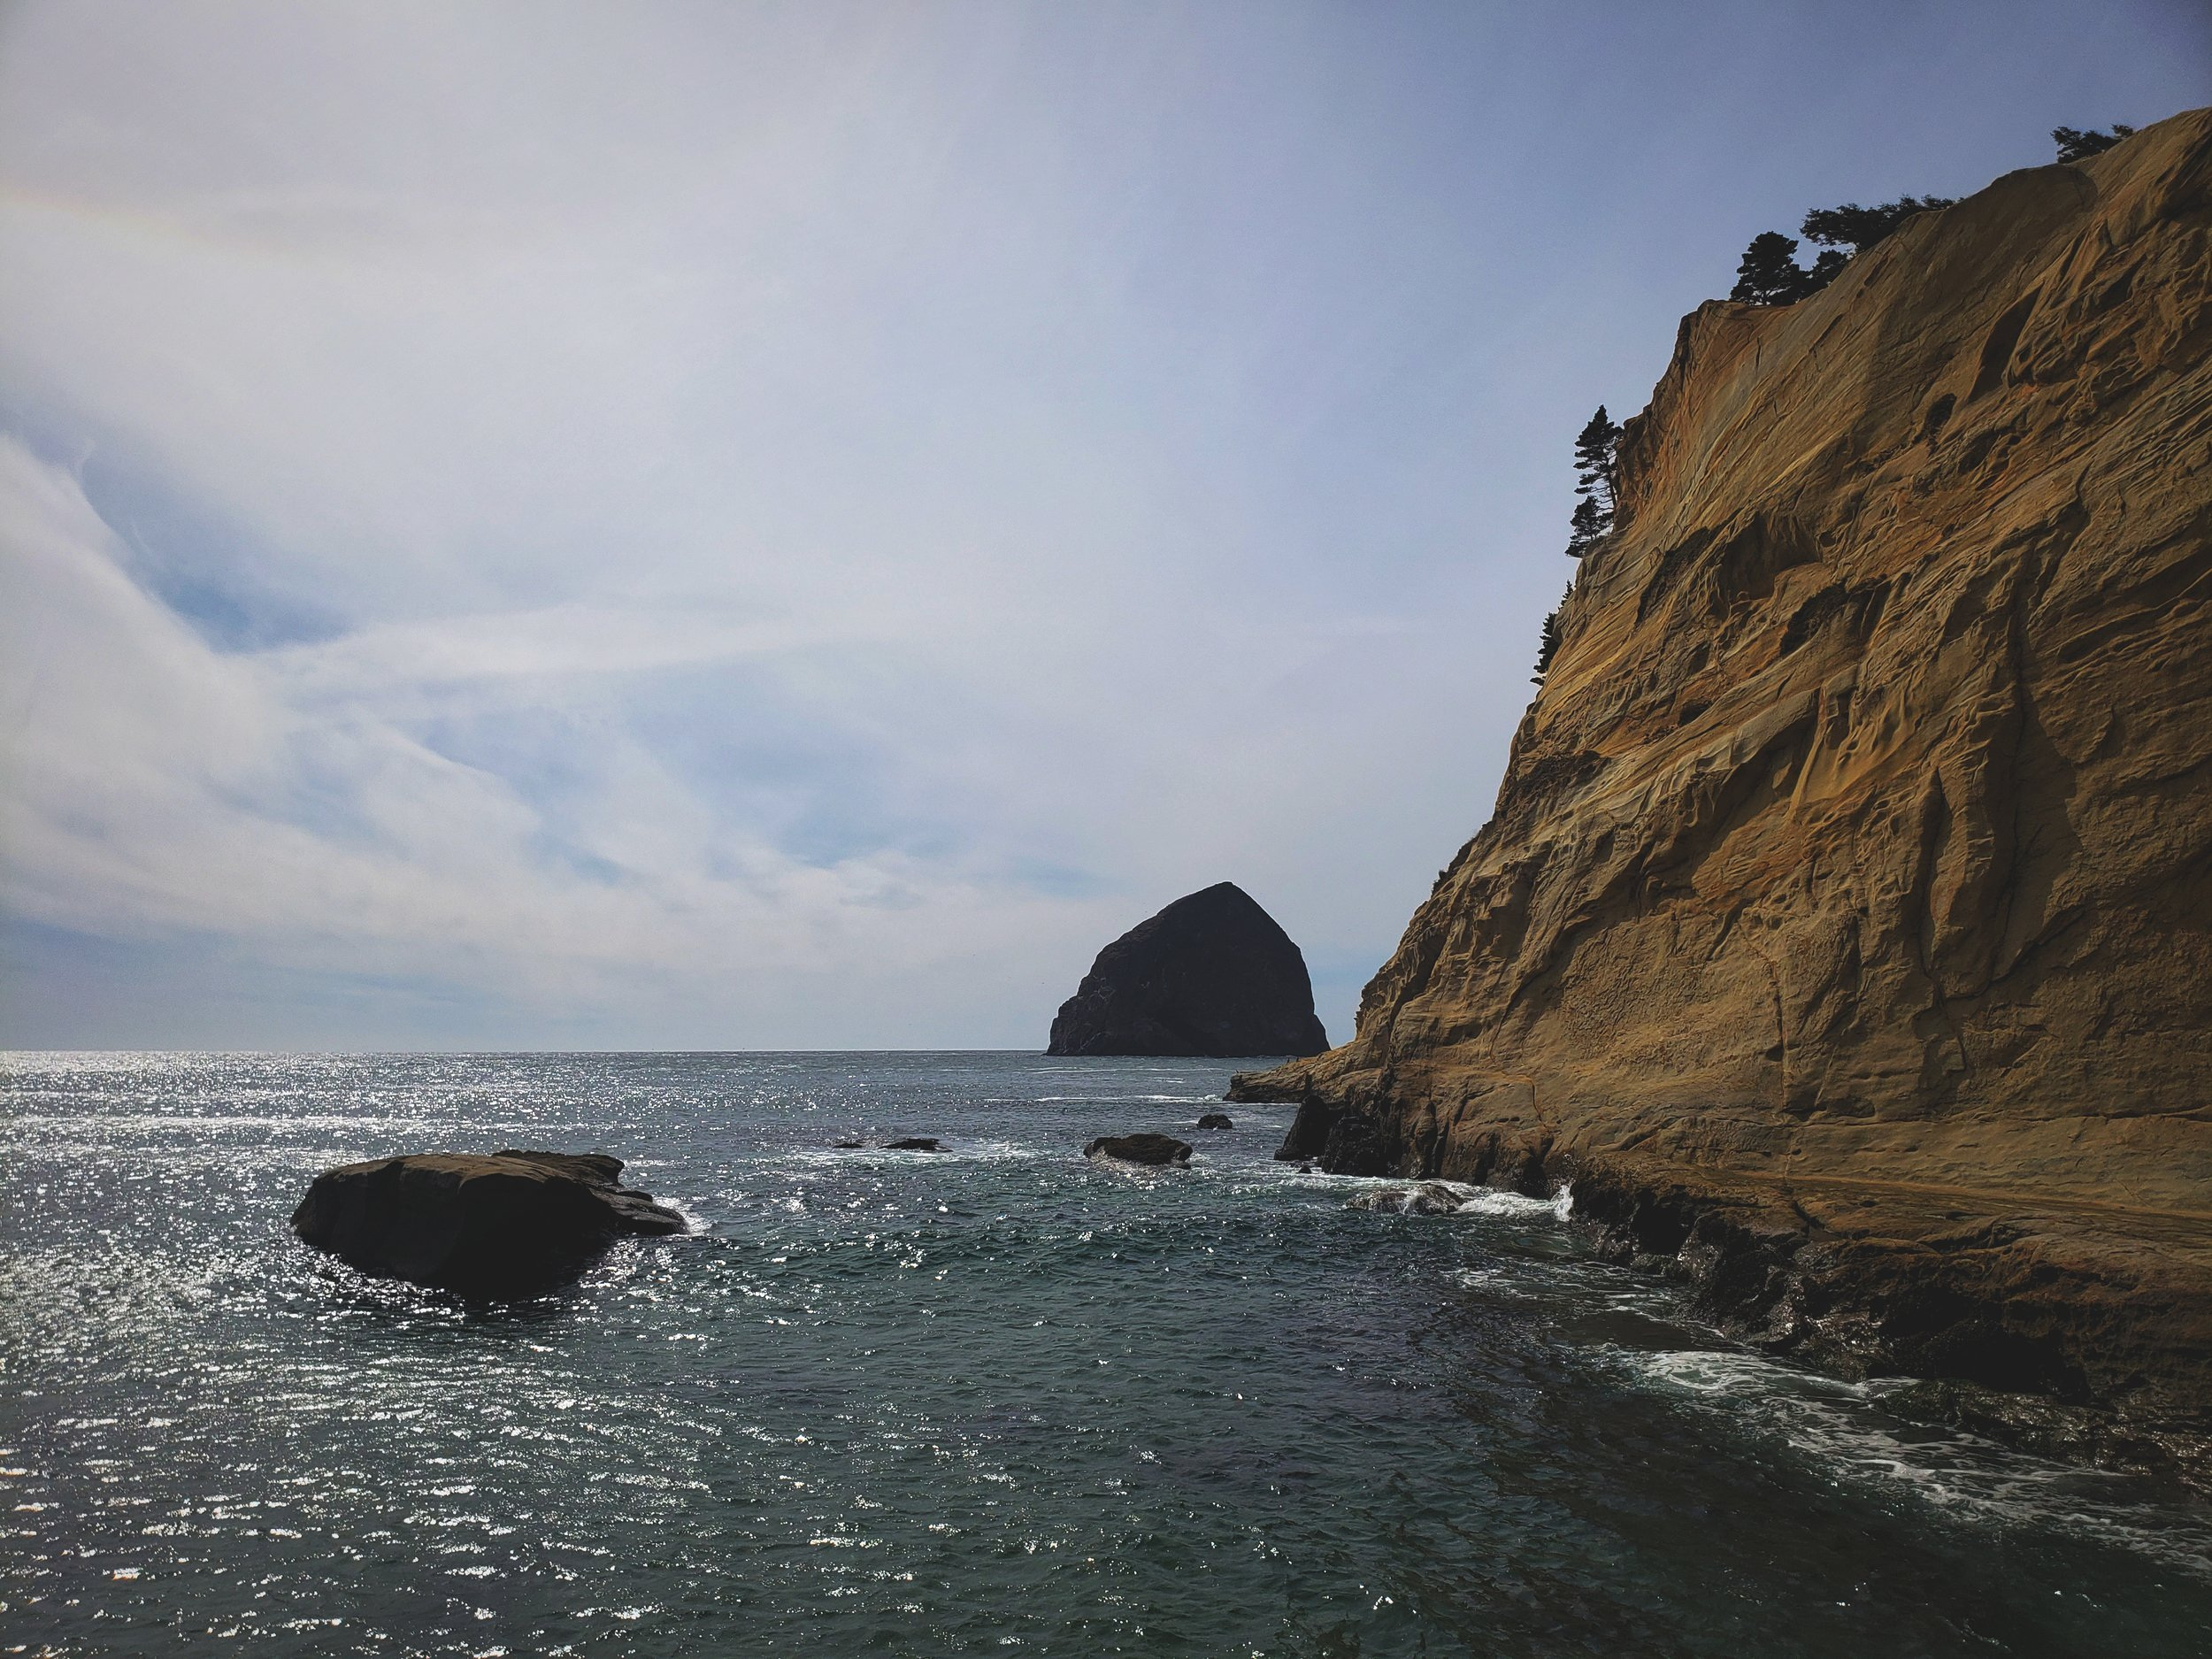 Haystack Rock has protected the soft sandstone cliffs of Cape Kiwanda from wave action while other areas have eroded completely.